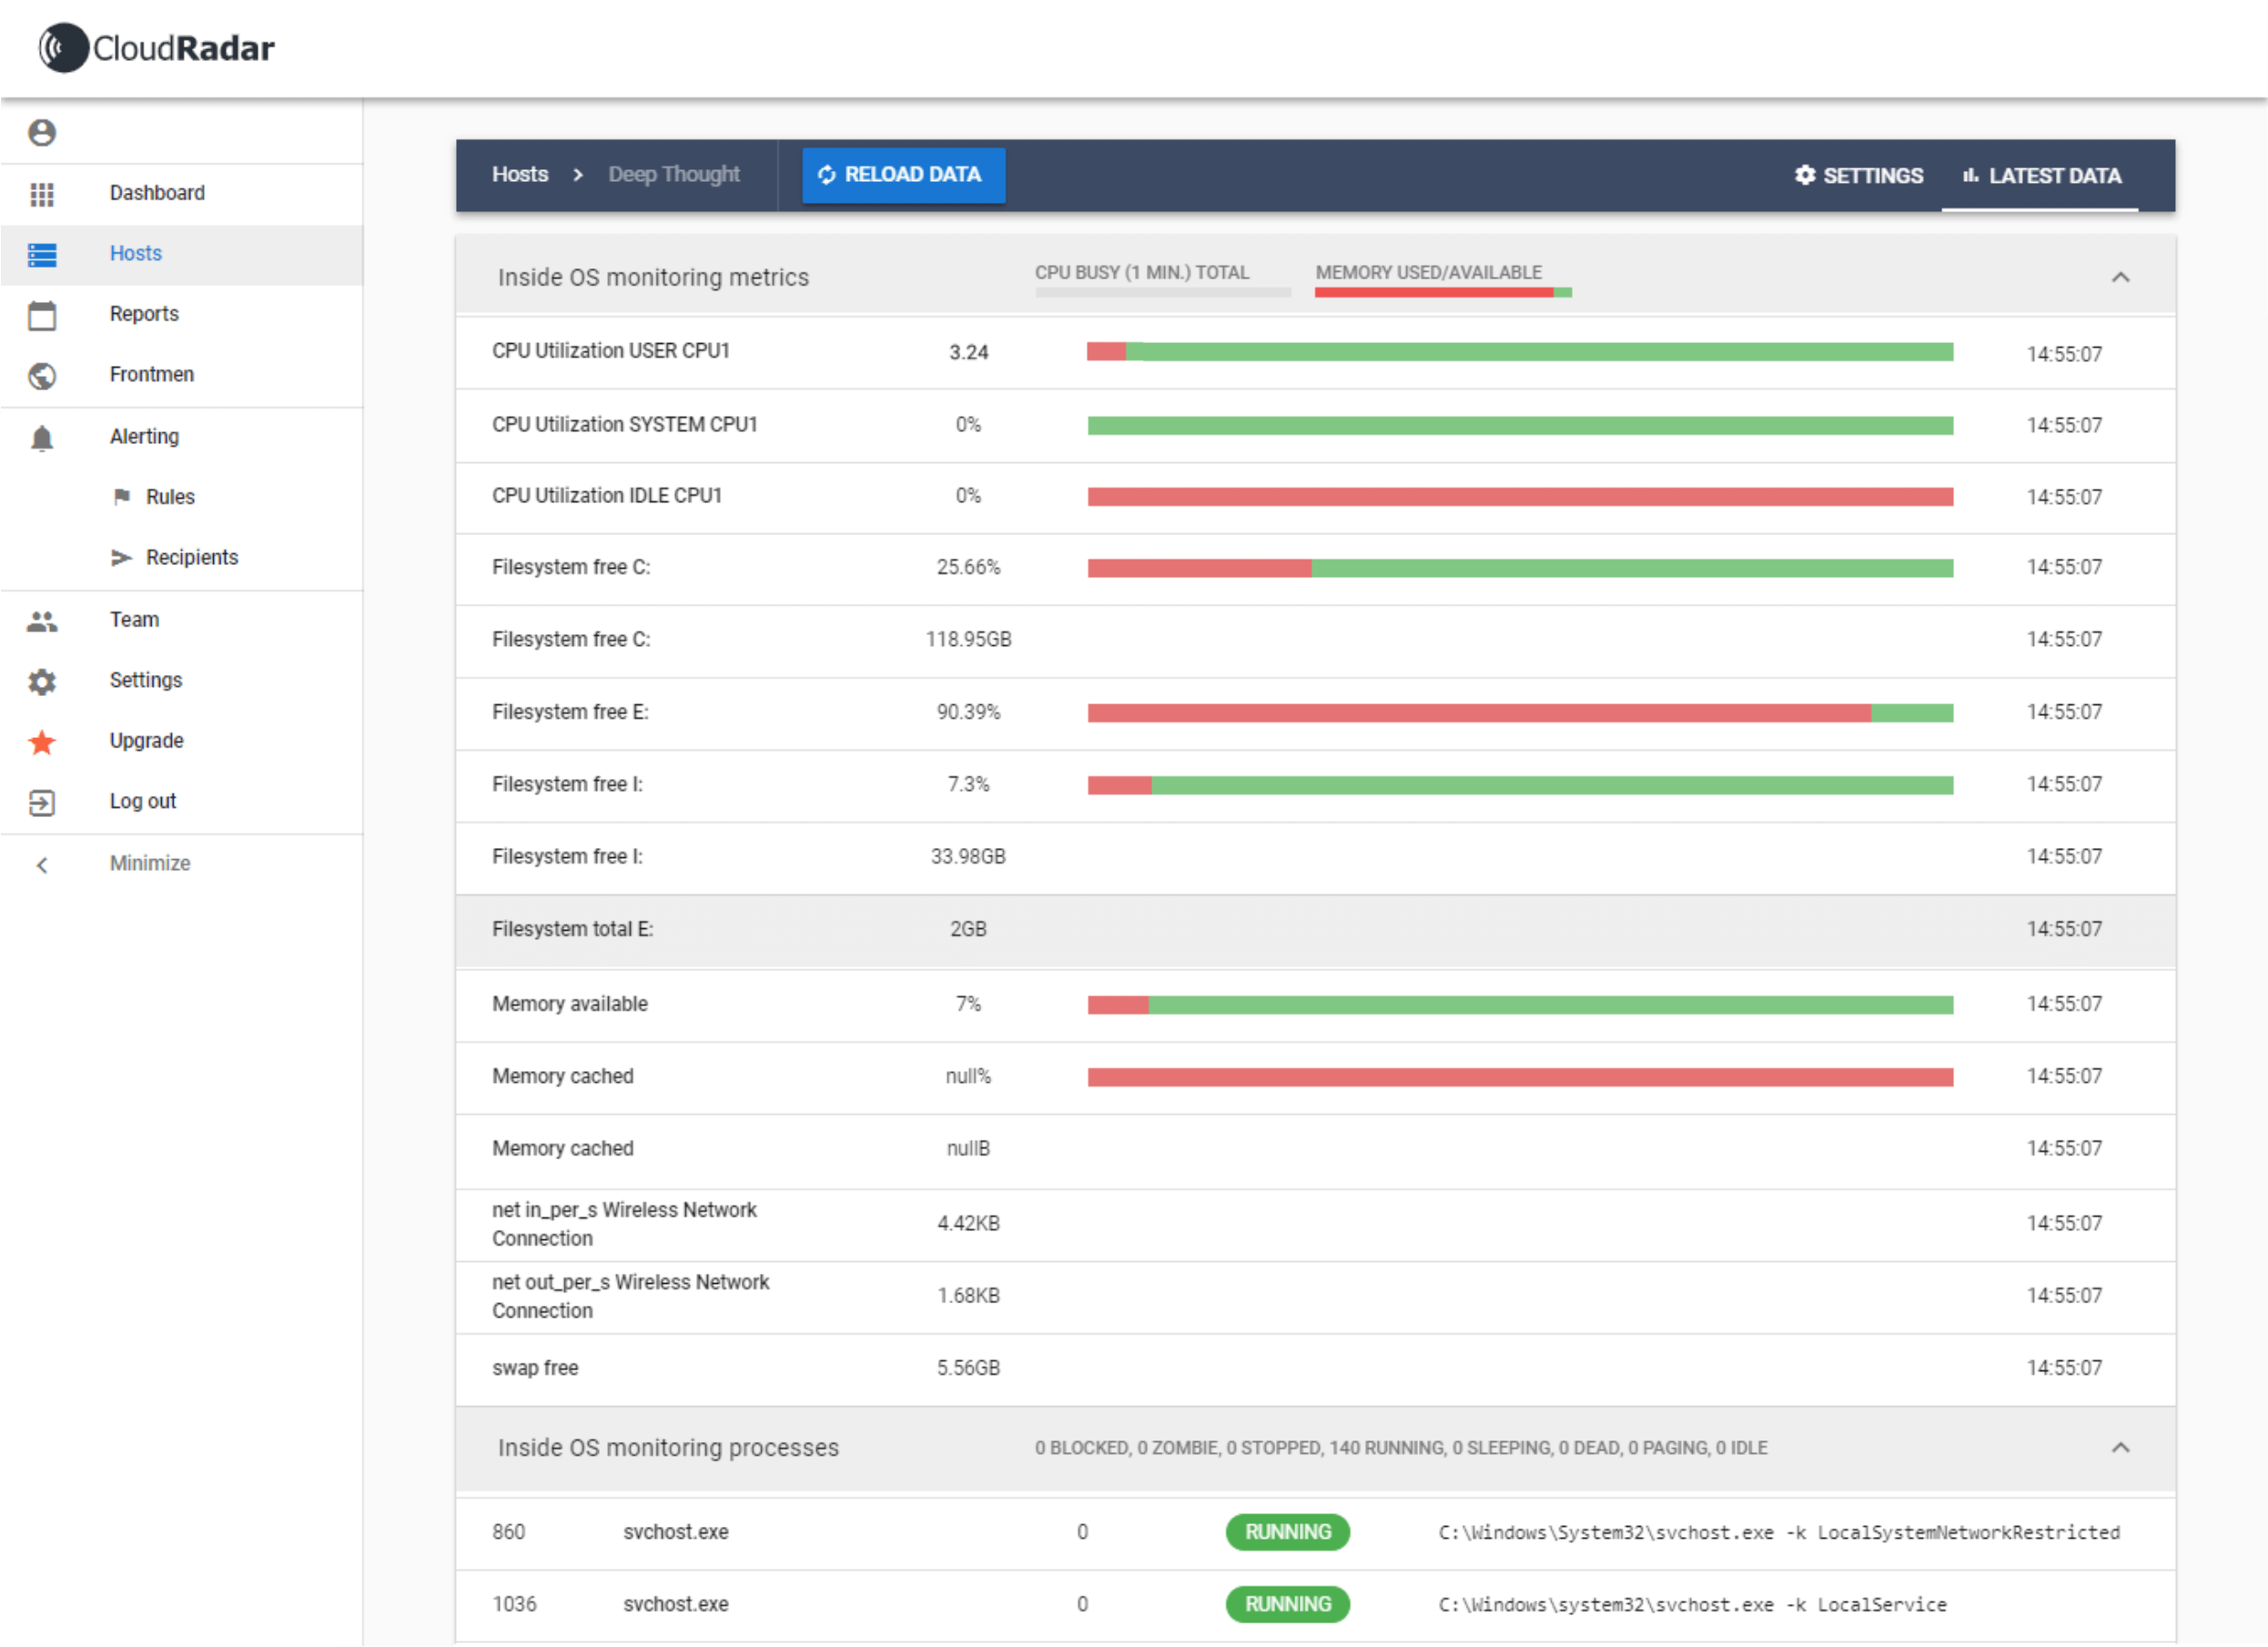 View all live server metrics in one elegant view